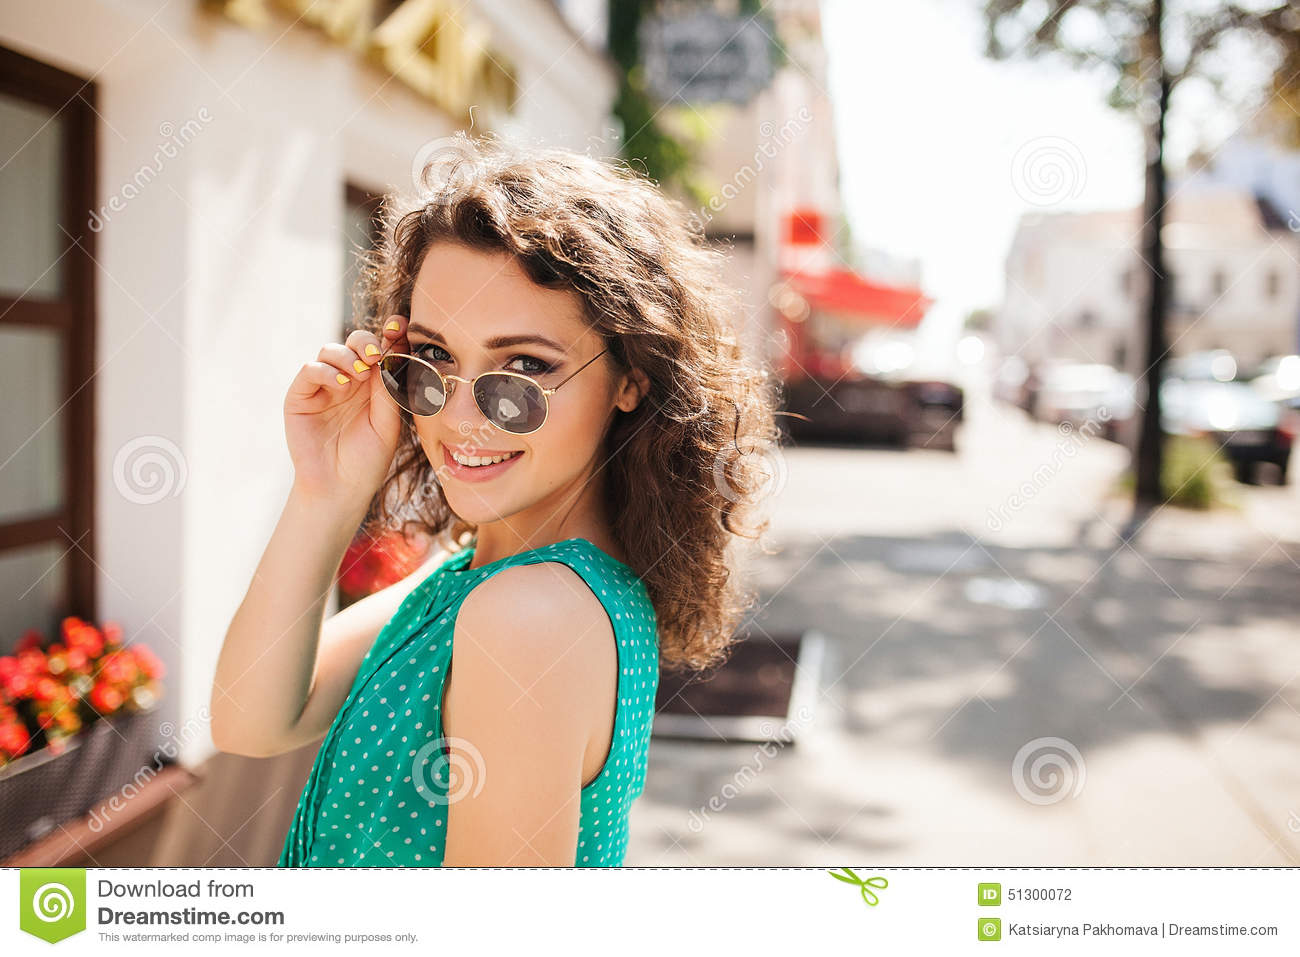 Woman in round sunglasses smiling over shoulder in city street